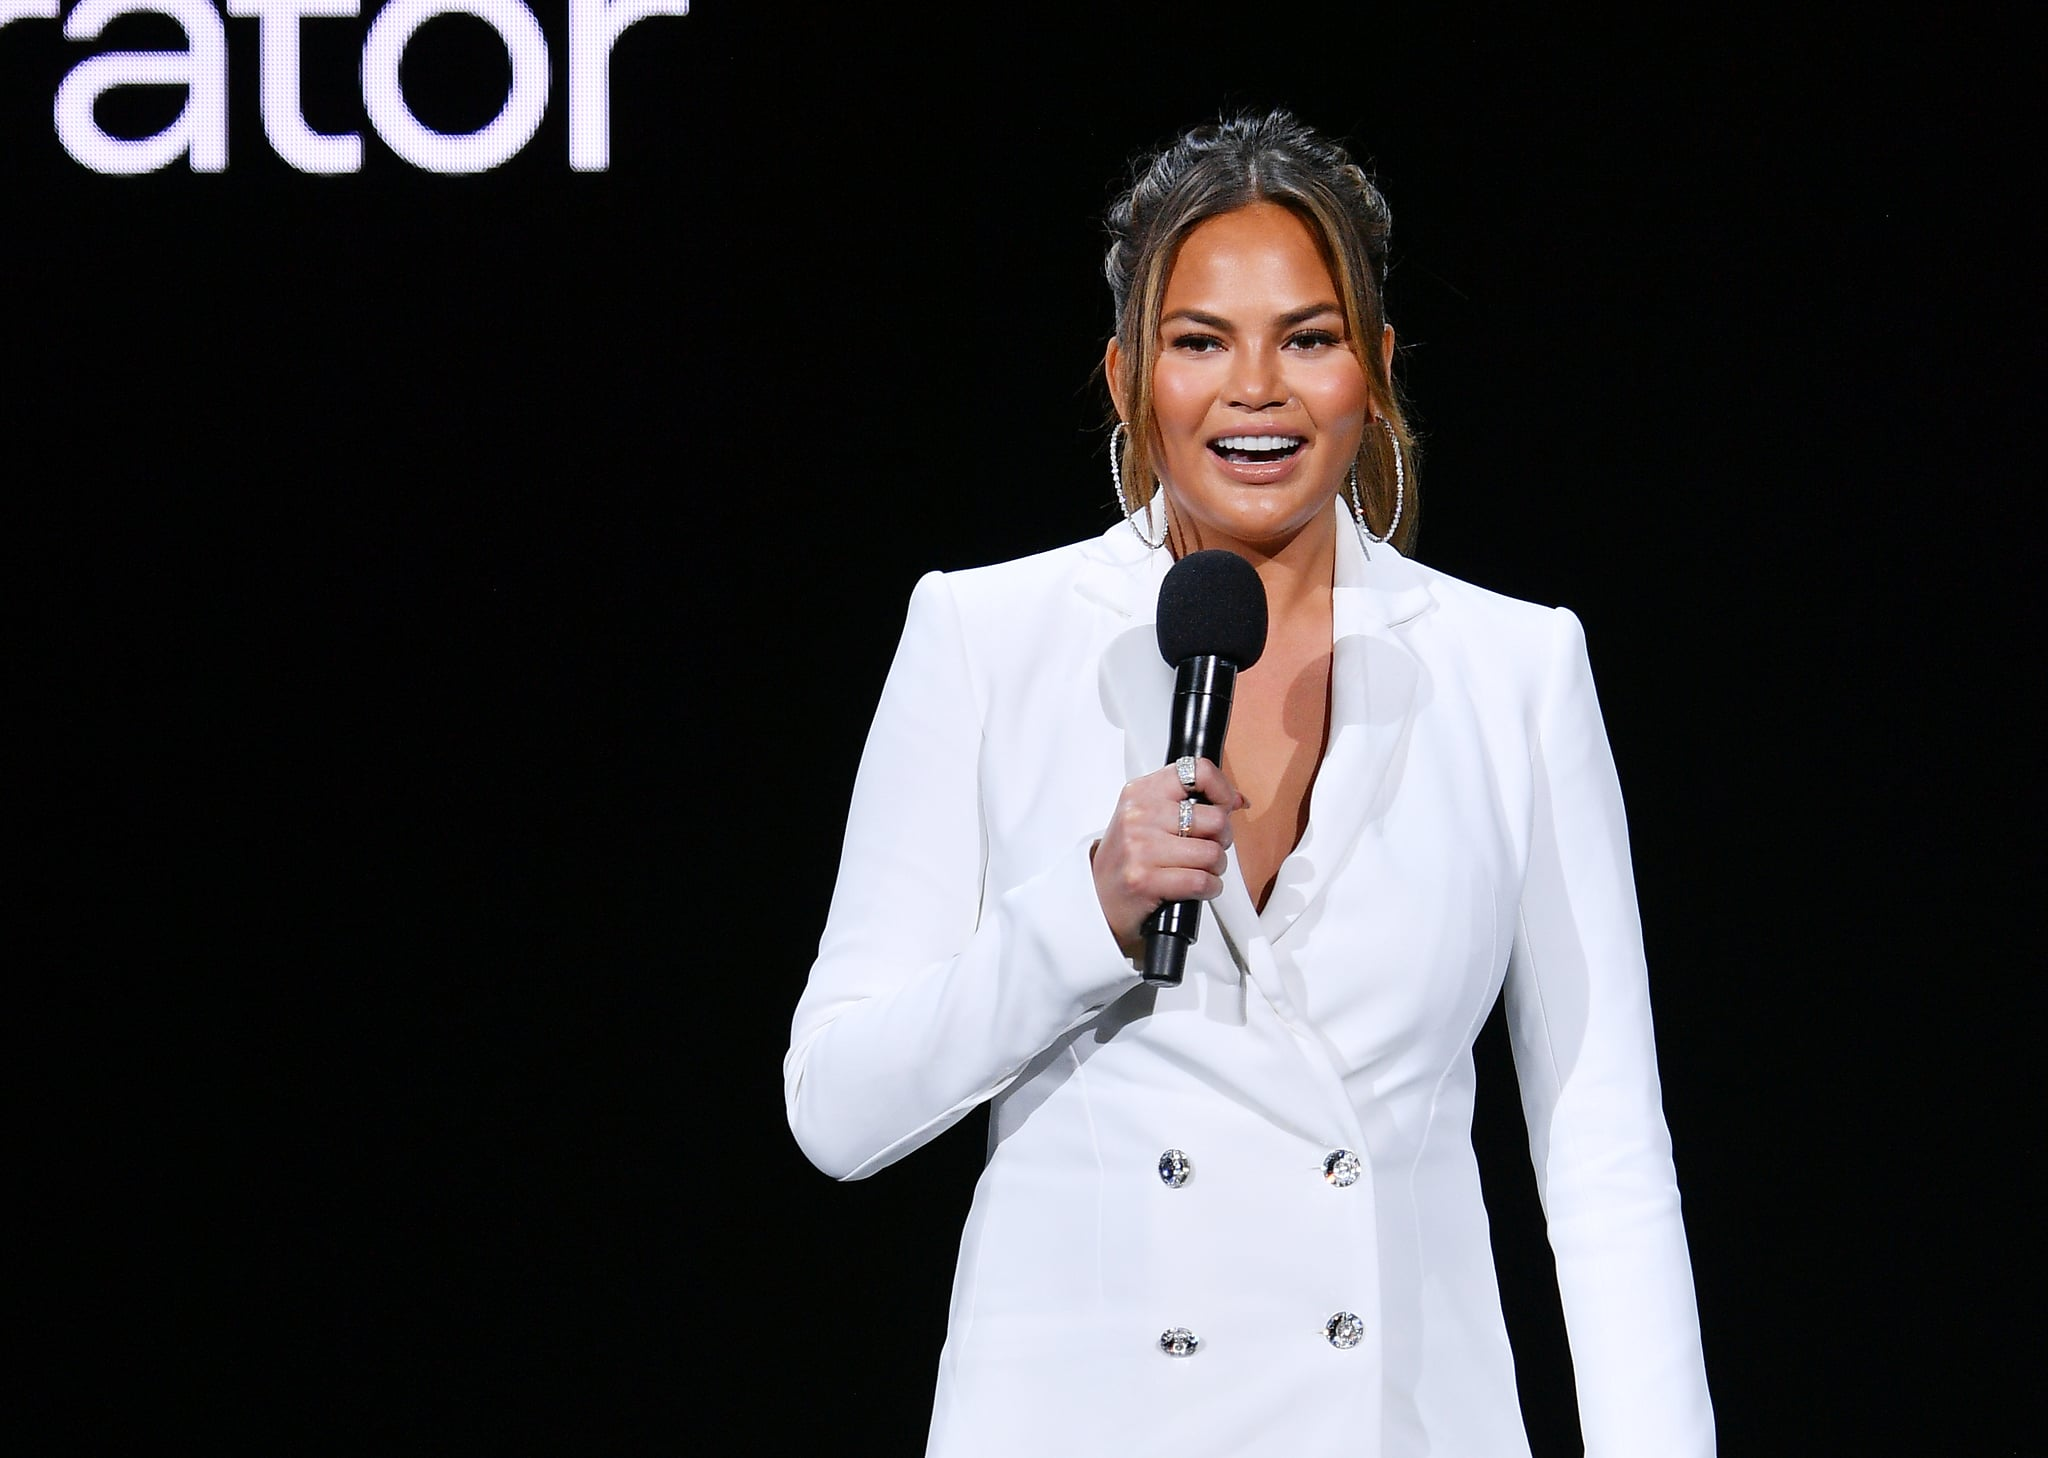 NEW YORK, NEW YORK - MAY 01:  Chrissy Teigen speaks onstage during the Hulu '19 Presentation at Hulu Theater at MSG on May 01, 2019 in New York City. (Photo by Dia Dipasupil/Getty Images for Hulu)